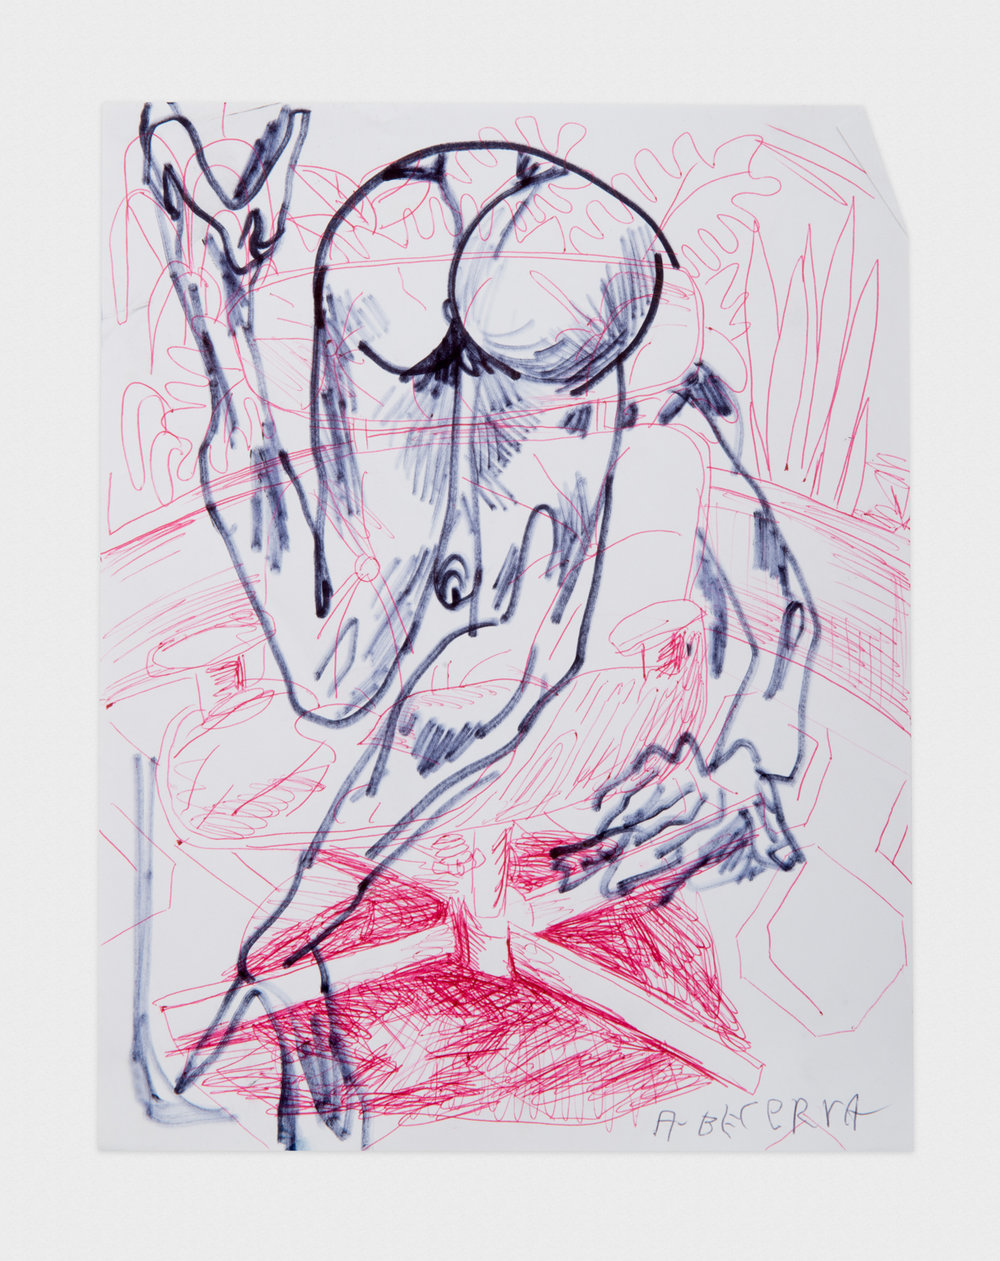 Alex Becerra Untitled 2016 Ballpoint pen and marker on paper 11 x 8 1/2 in (27.94h x 21.59w cm) AB443